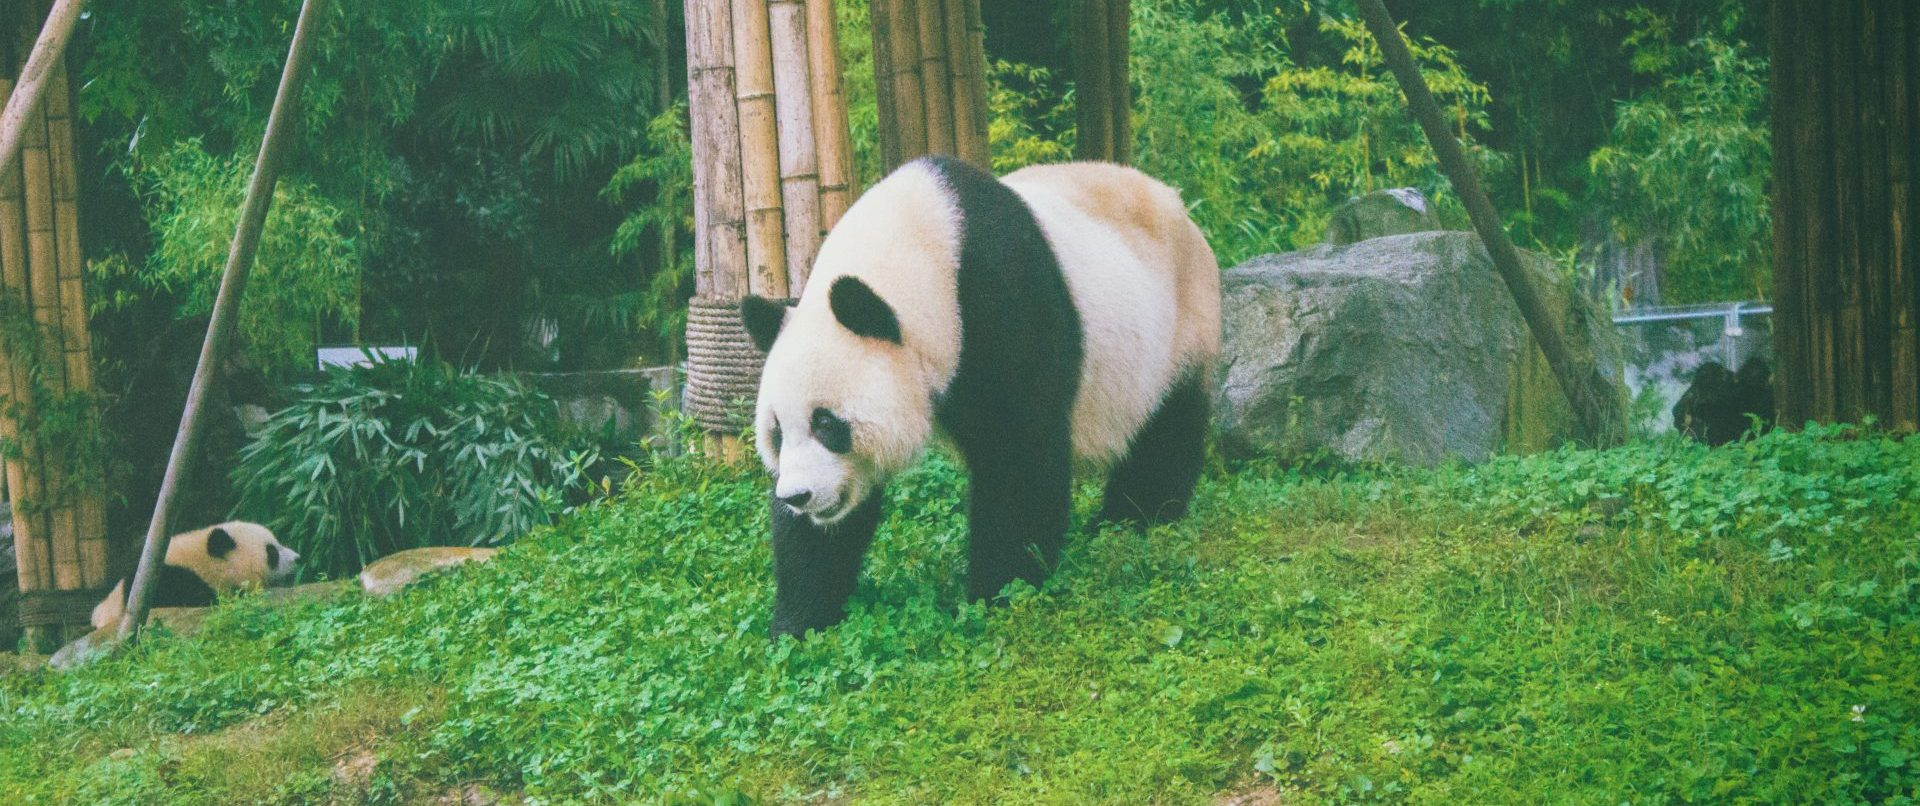 panda on grass field